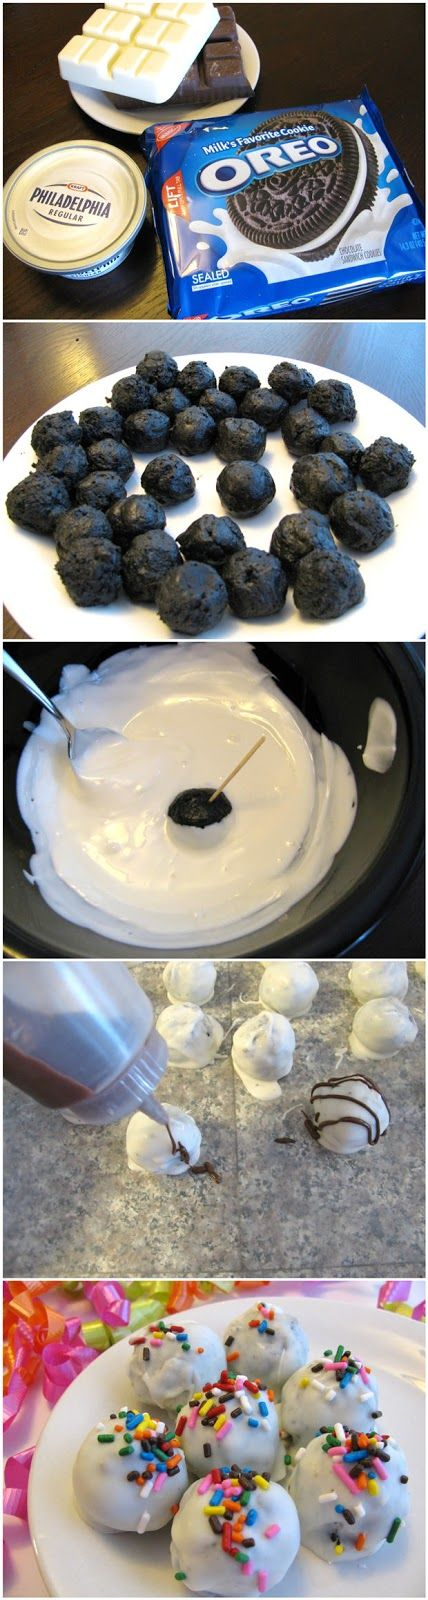 Oreo Balls. So good and so easy. 1 package Oreos in the food processor, 1 package of softened cream cheese, mix together, form into 1inch balls and dip into melted white candy wafers. NOT (I repeat) NOT into melted chocolate. The dip must be runny enough or the Oreo balls will break.